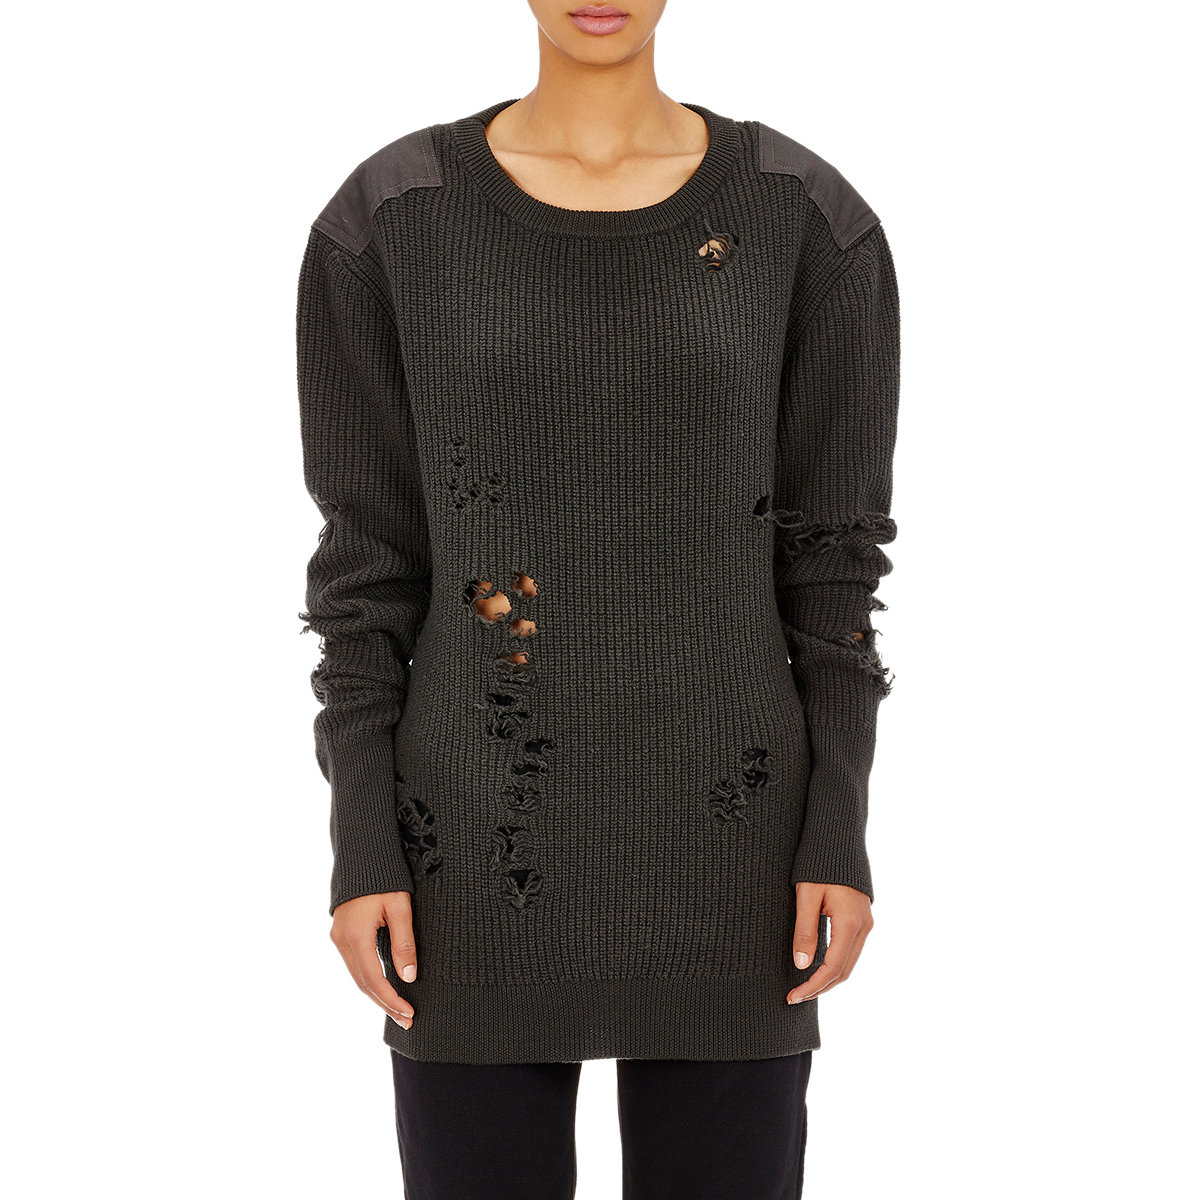 71d9ac2e92d62 Lyst - Yeezy Destroyed Sweater in Black